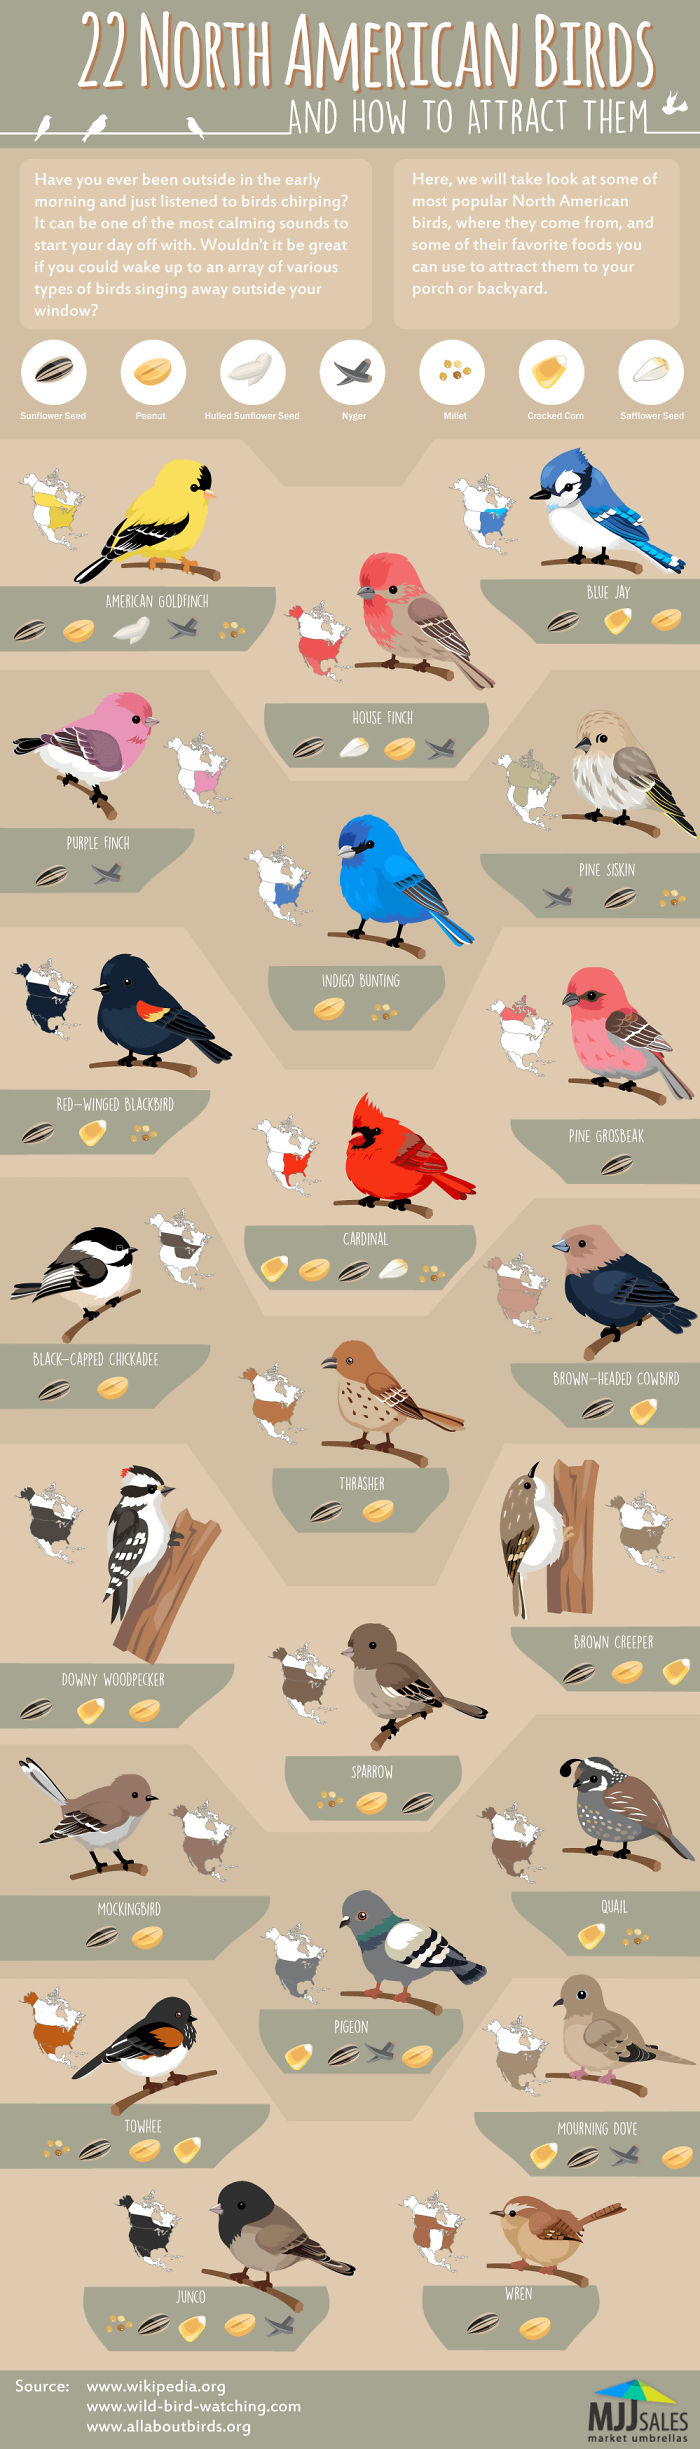 Found This Cool Chart Of North American Birds